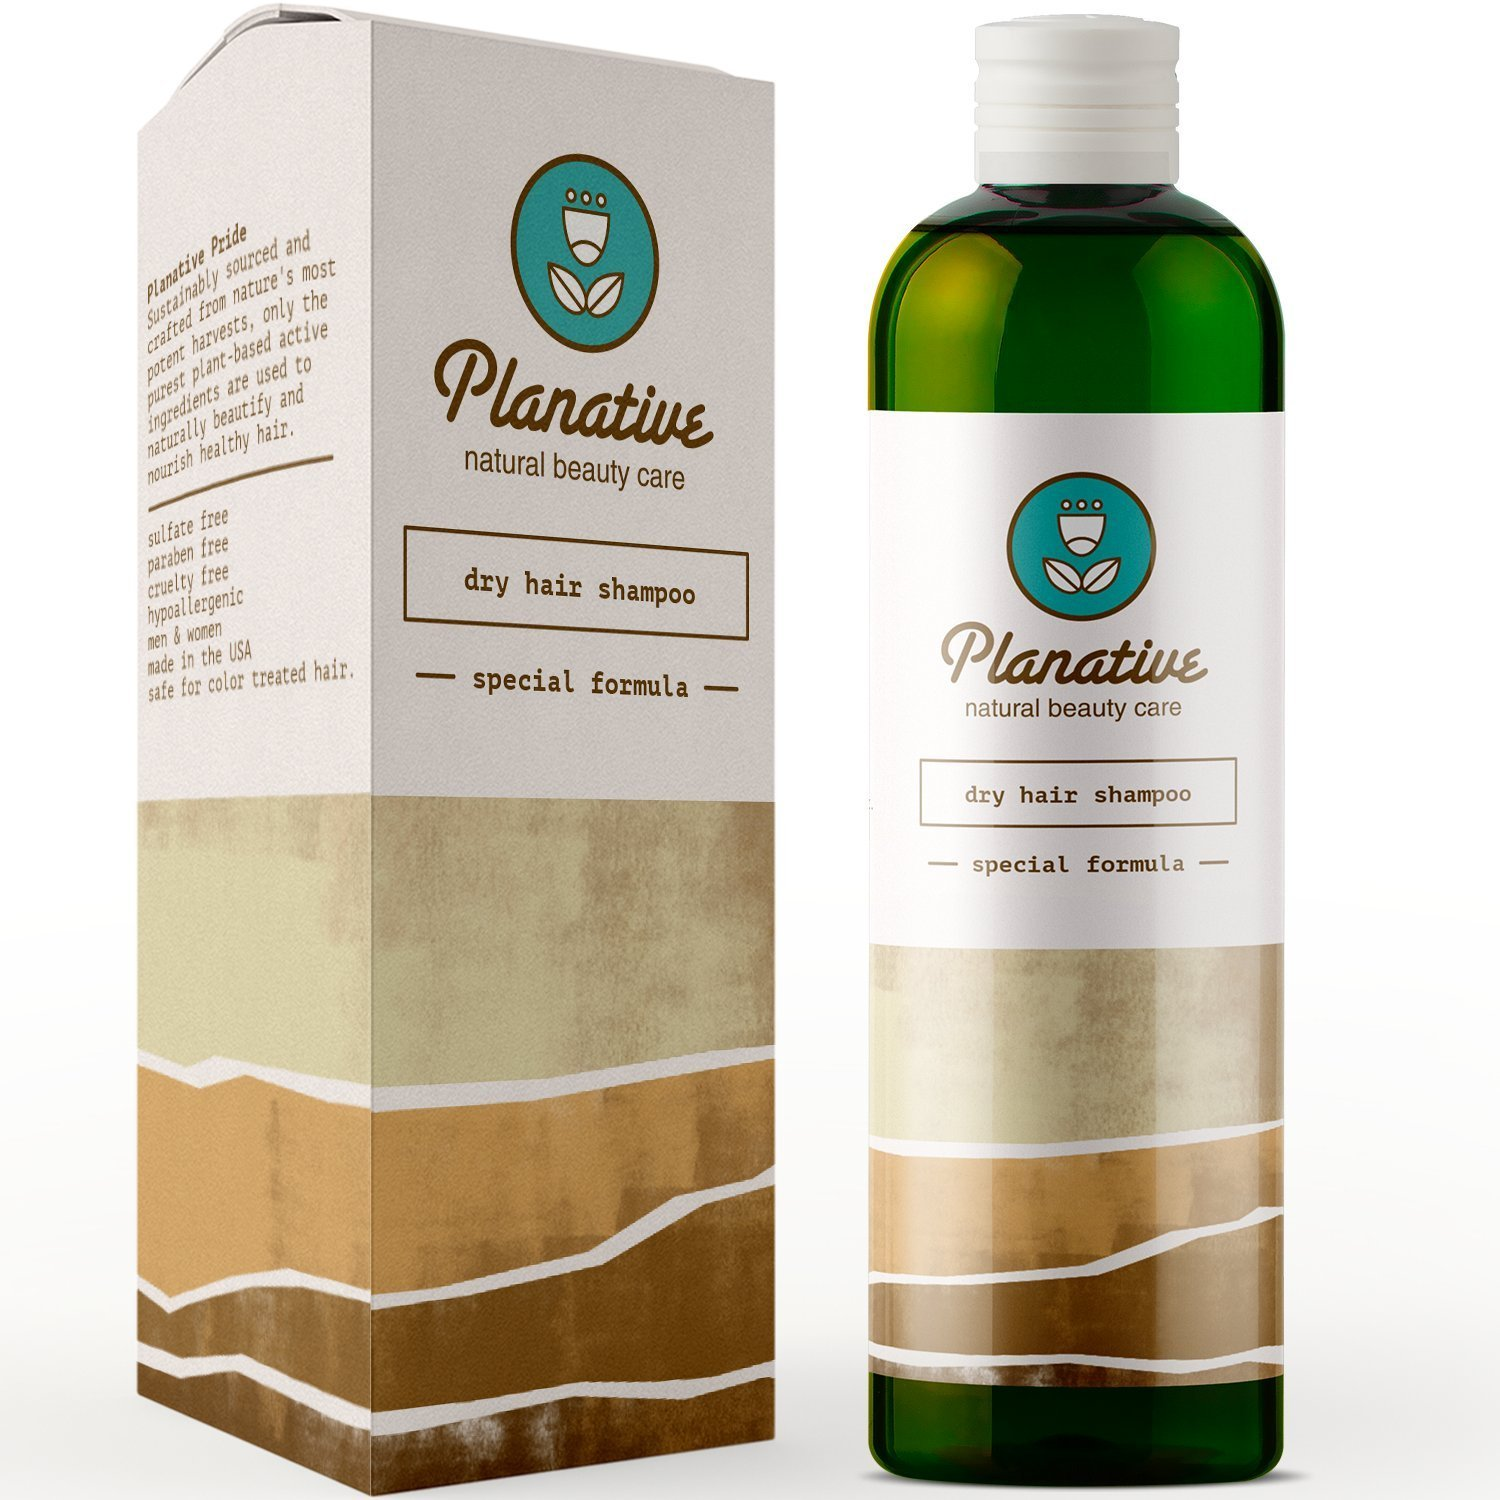 Shampoo For Dry Hair and Scalp Pure Nourishing Oils; Jojoba + Almond + Carrot + Parsley Seed + Lavender Essential Oil Hydrating Natural Hair Care Sulfate Free Treatment for Soft Healthy Beautiful Hair